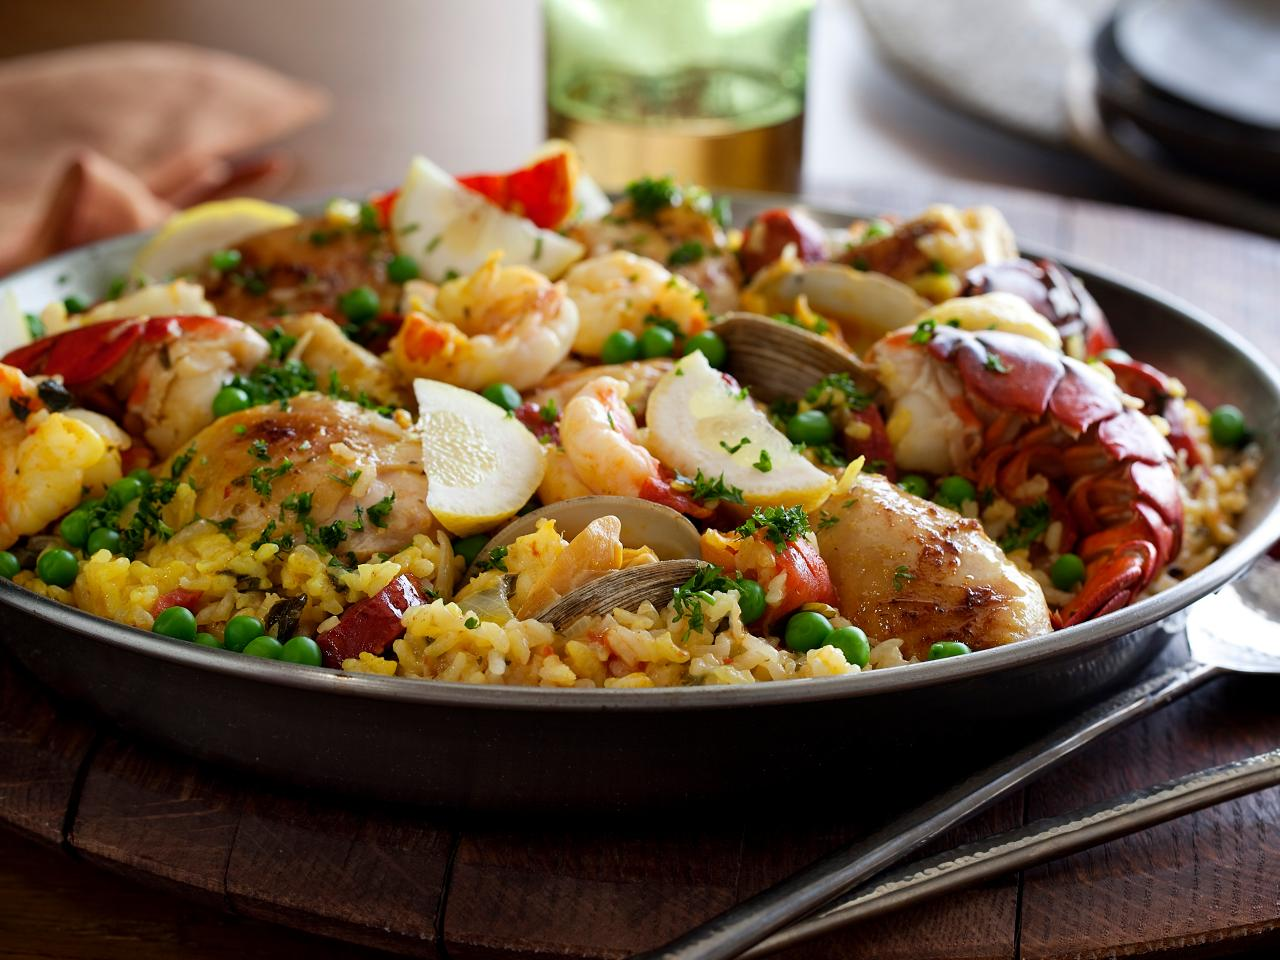 Images of Paella | 1280x960